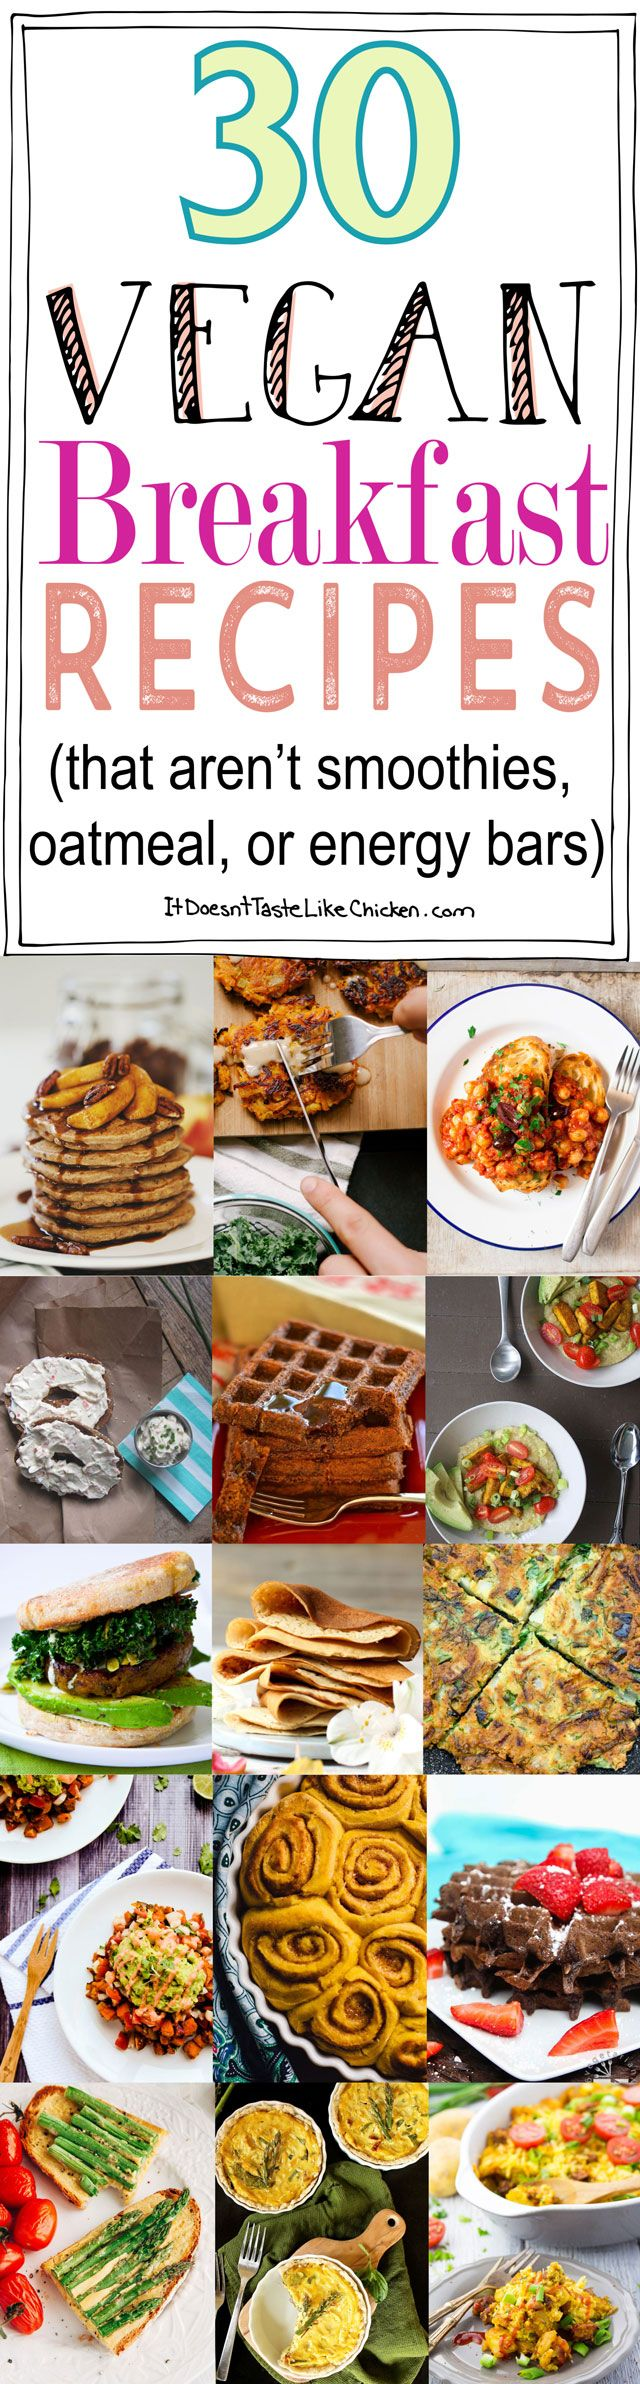 30 Vegan Breakfast Recipes (that aren't smoothies, oatmeal, or energy bars). Everything from french toast, to tofu scrambles, to